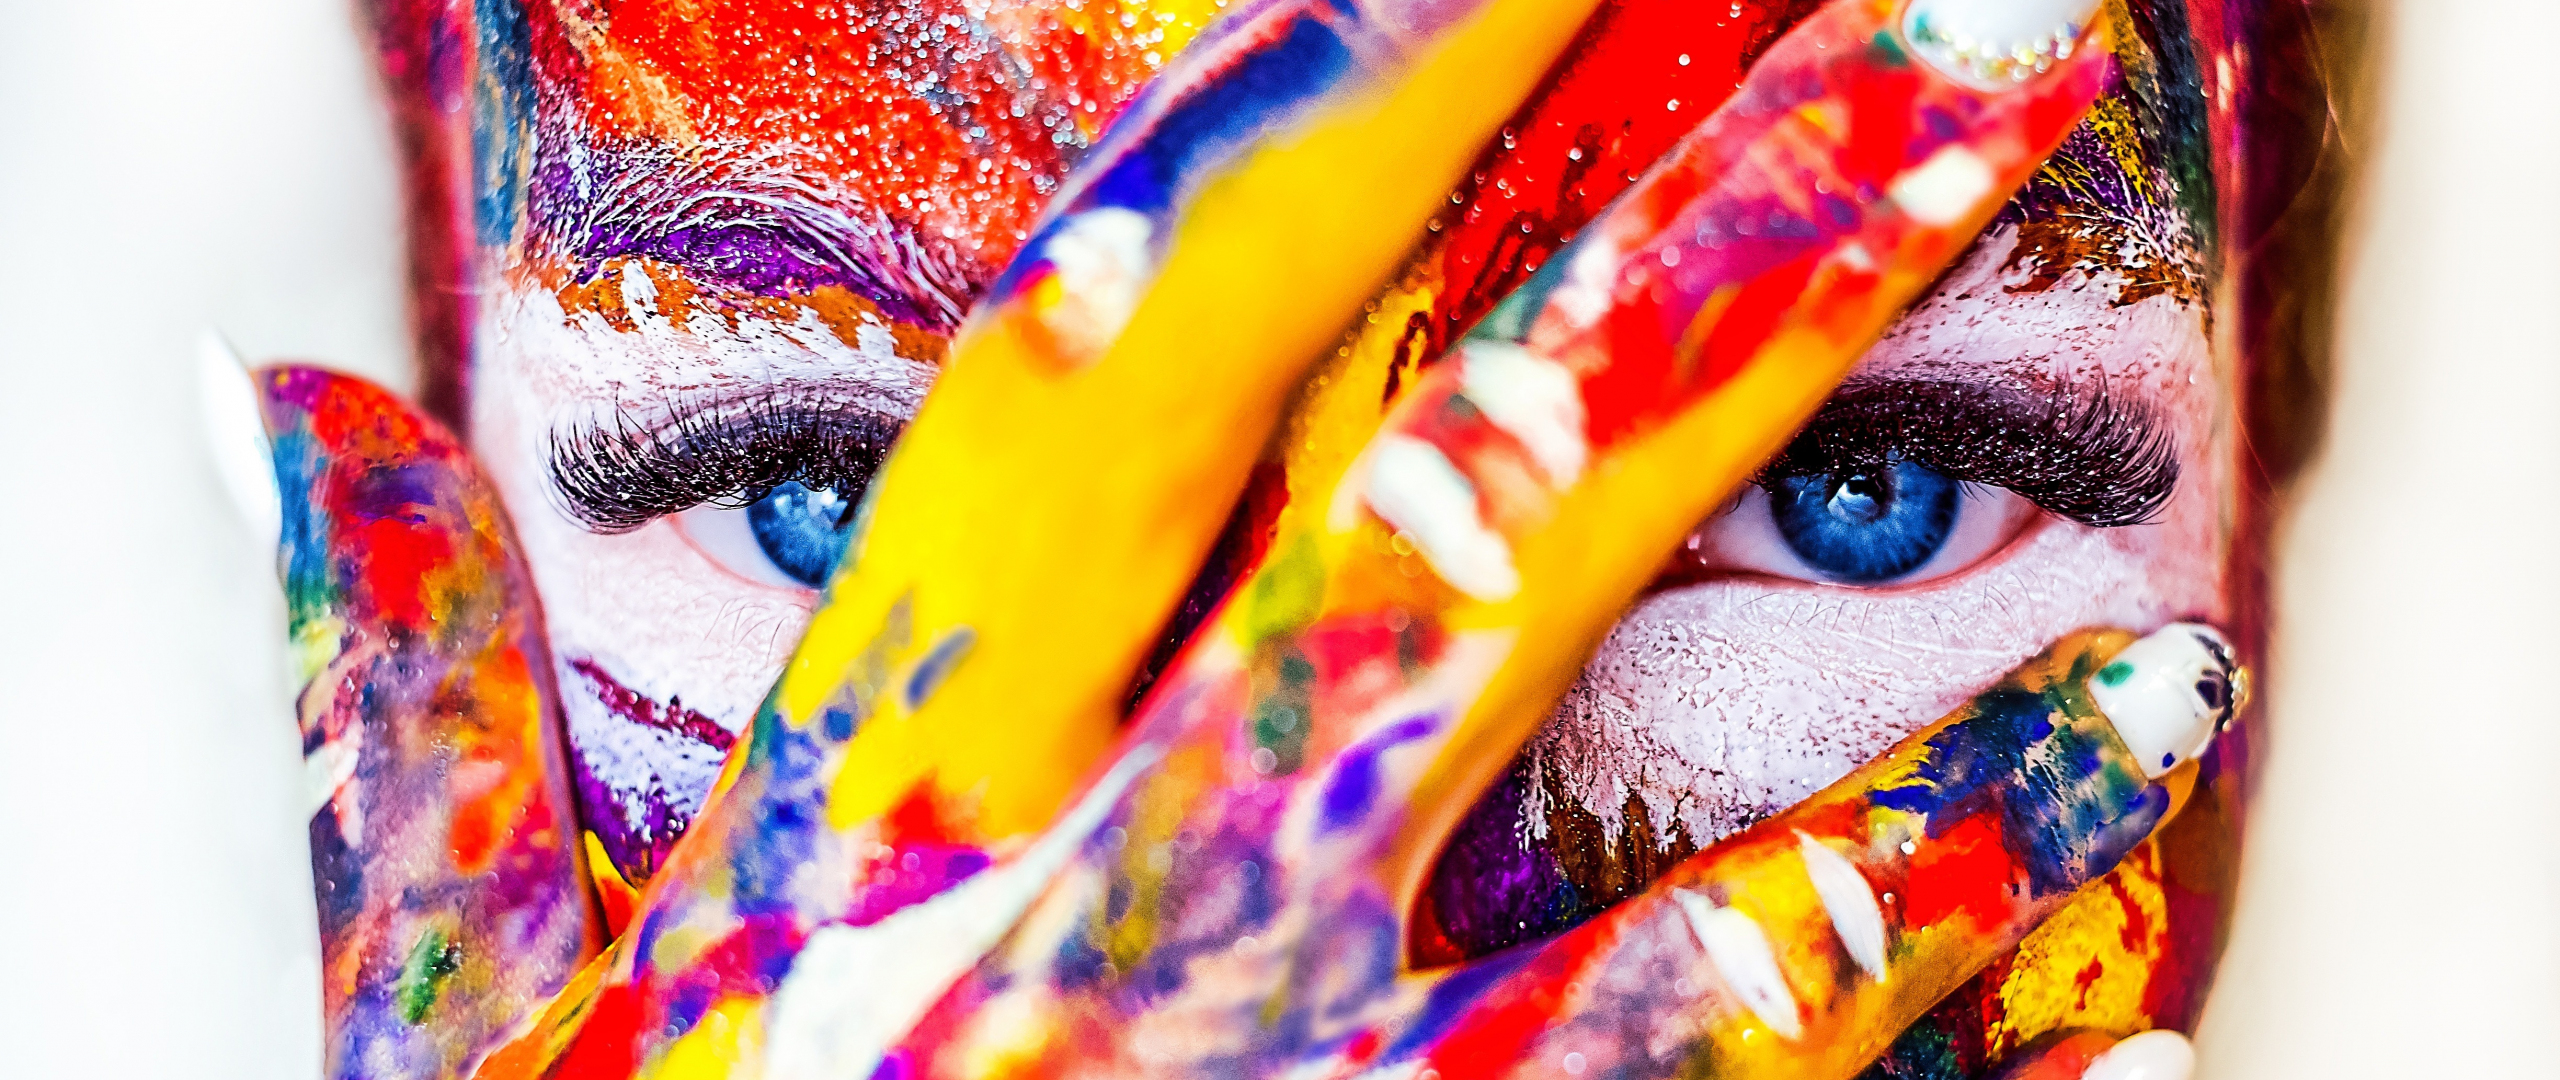 Paint on face and hand, colorful, close up, 2560x1080 wallpaper